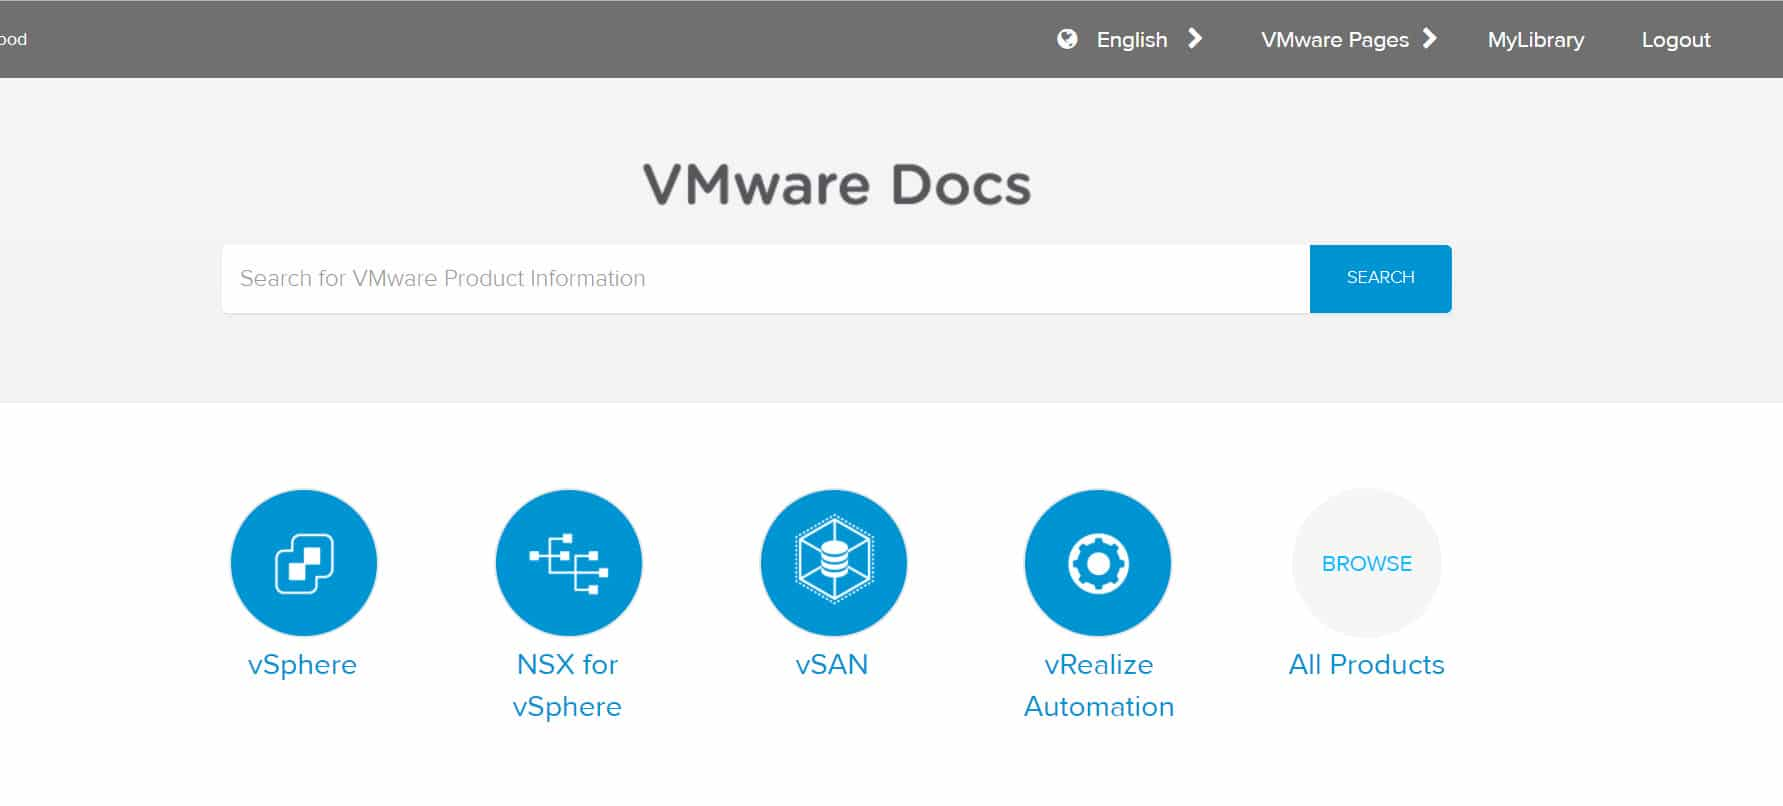 VMware Docs - Main Window